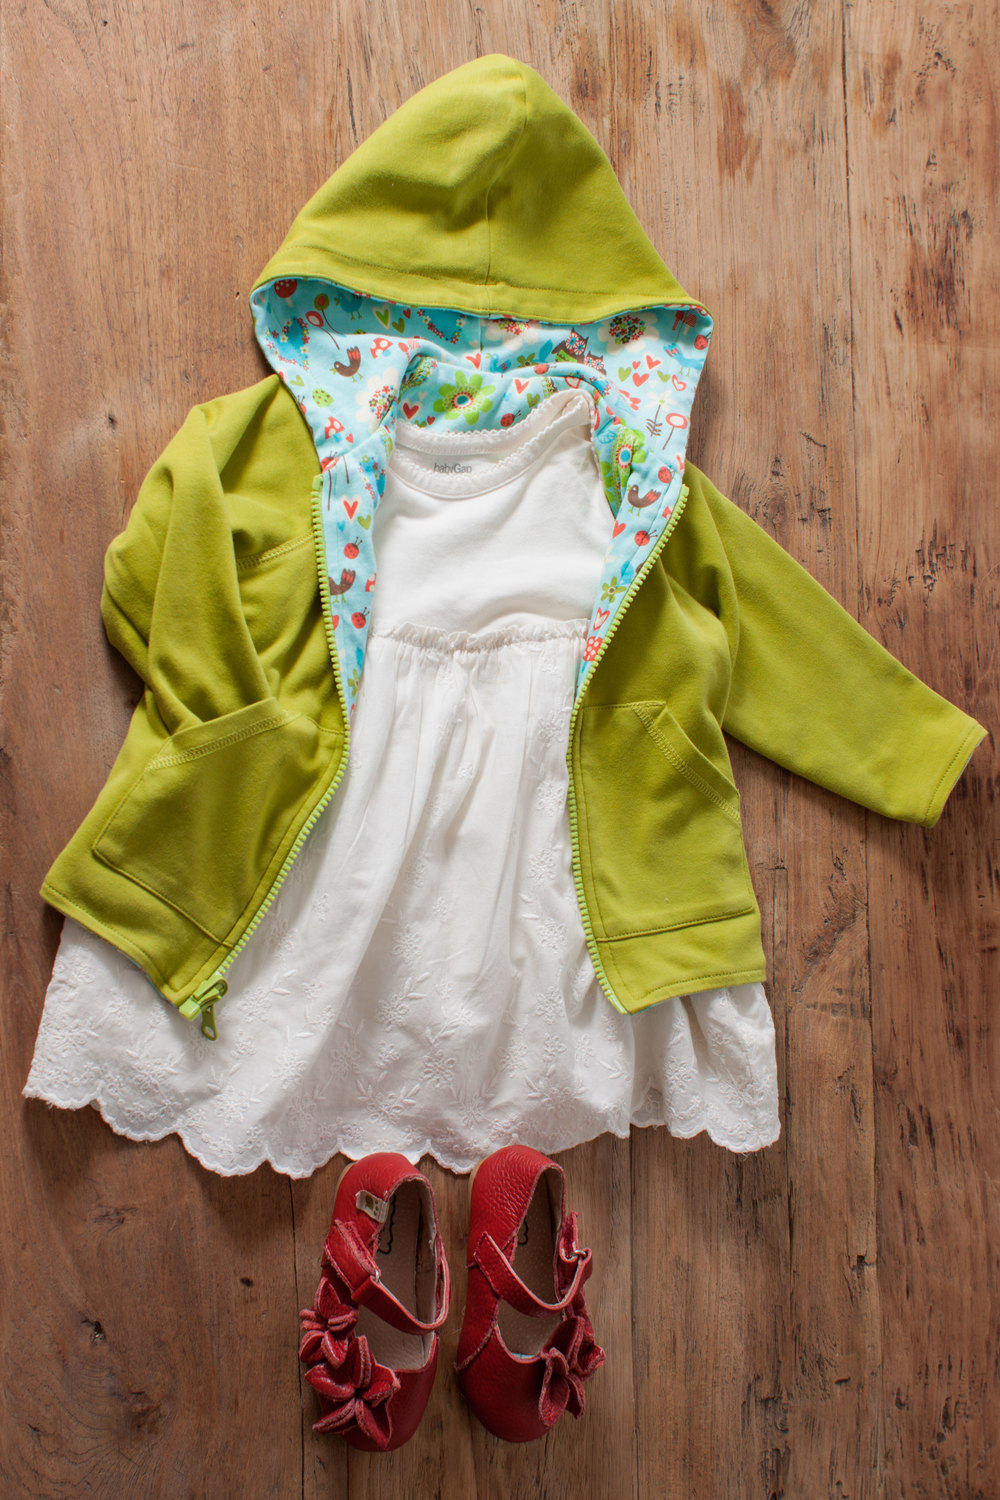 Image includes NEW Baby Gap cream lace dress. Size: 6-12 months. $8.50